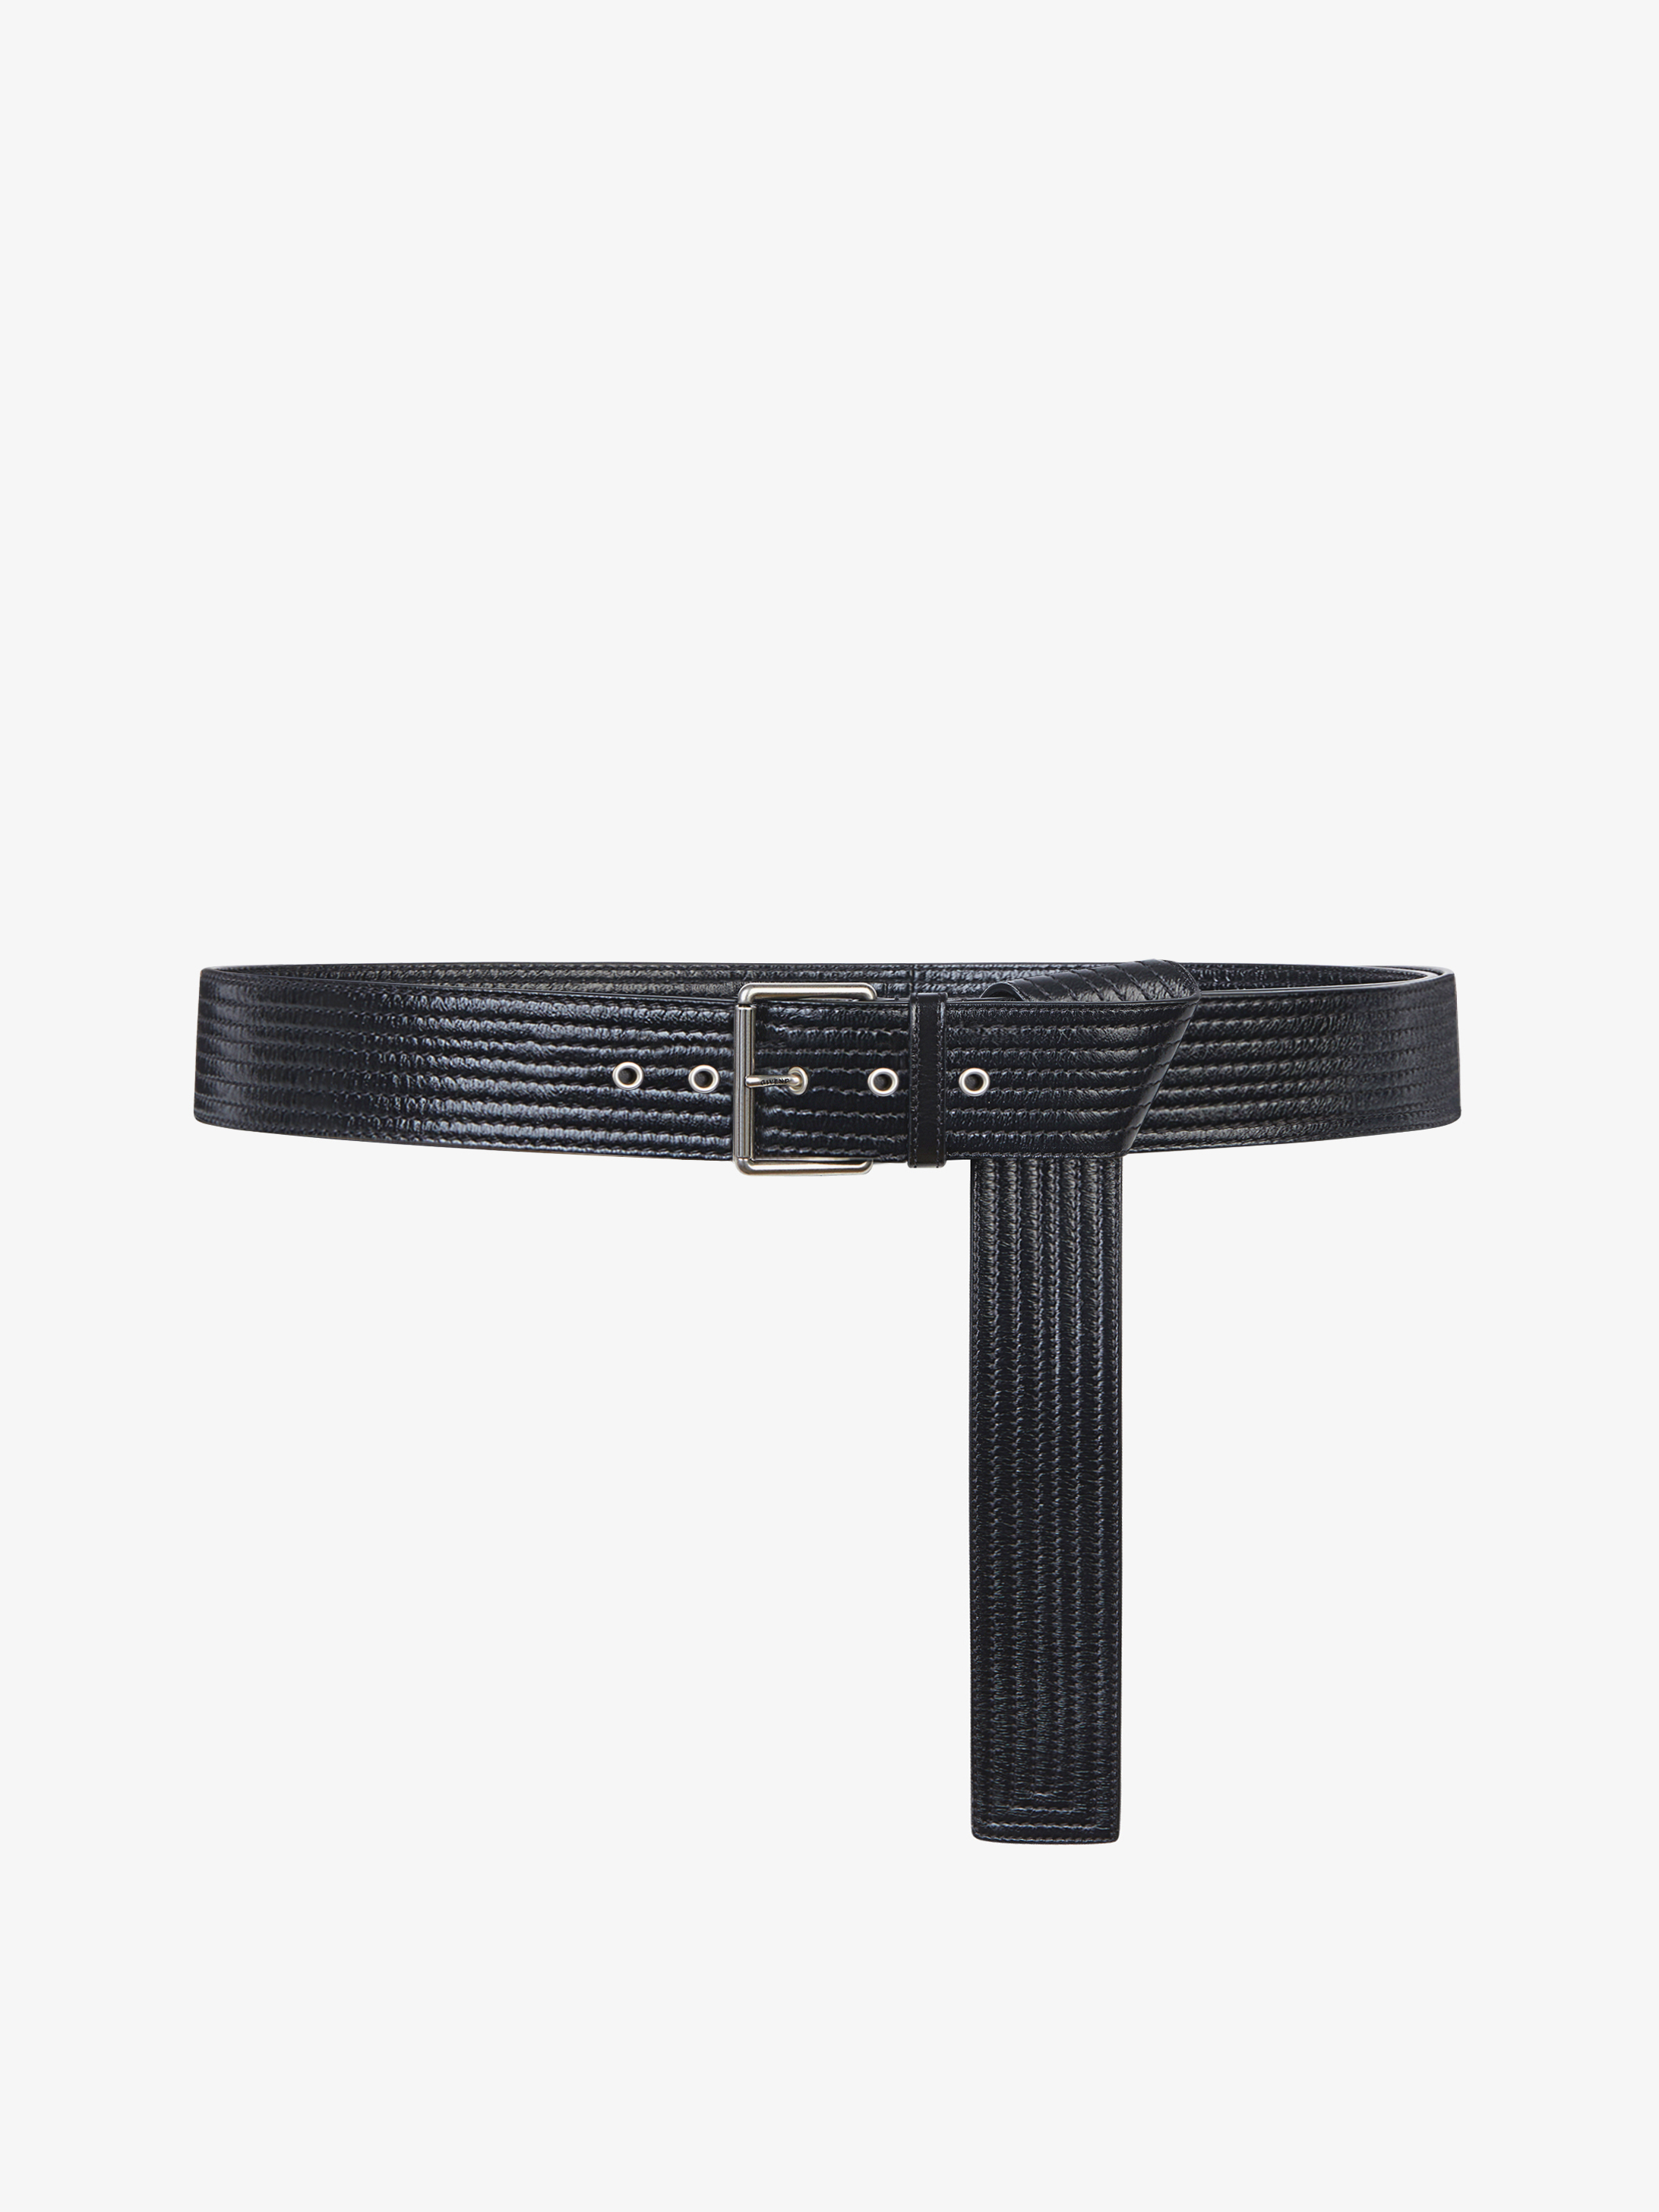 Long top stiched belt in leather